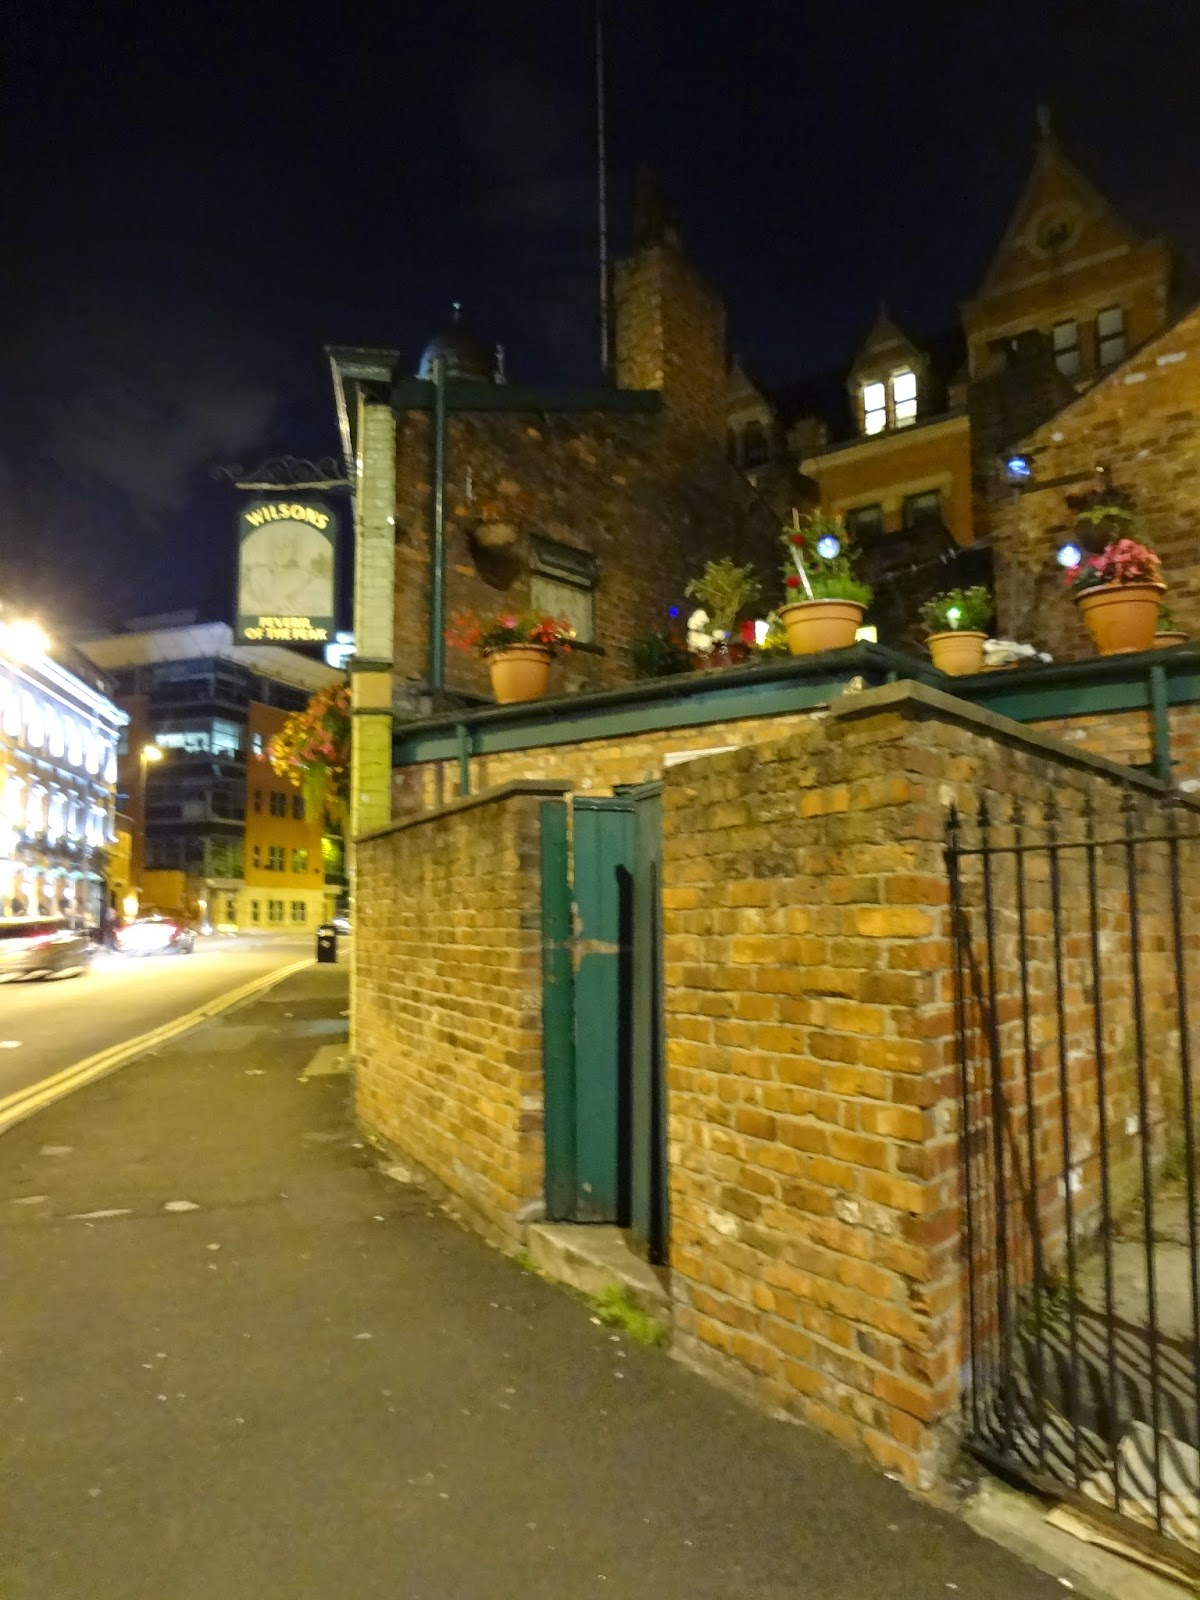 What to do in Manchester, England